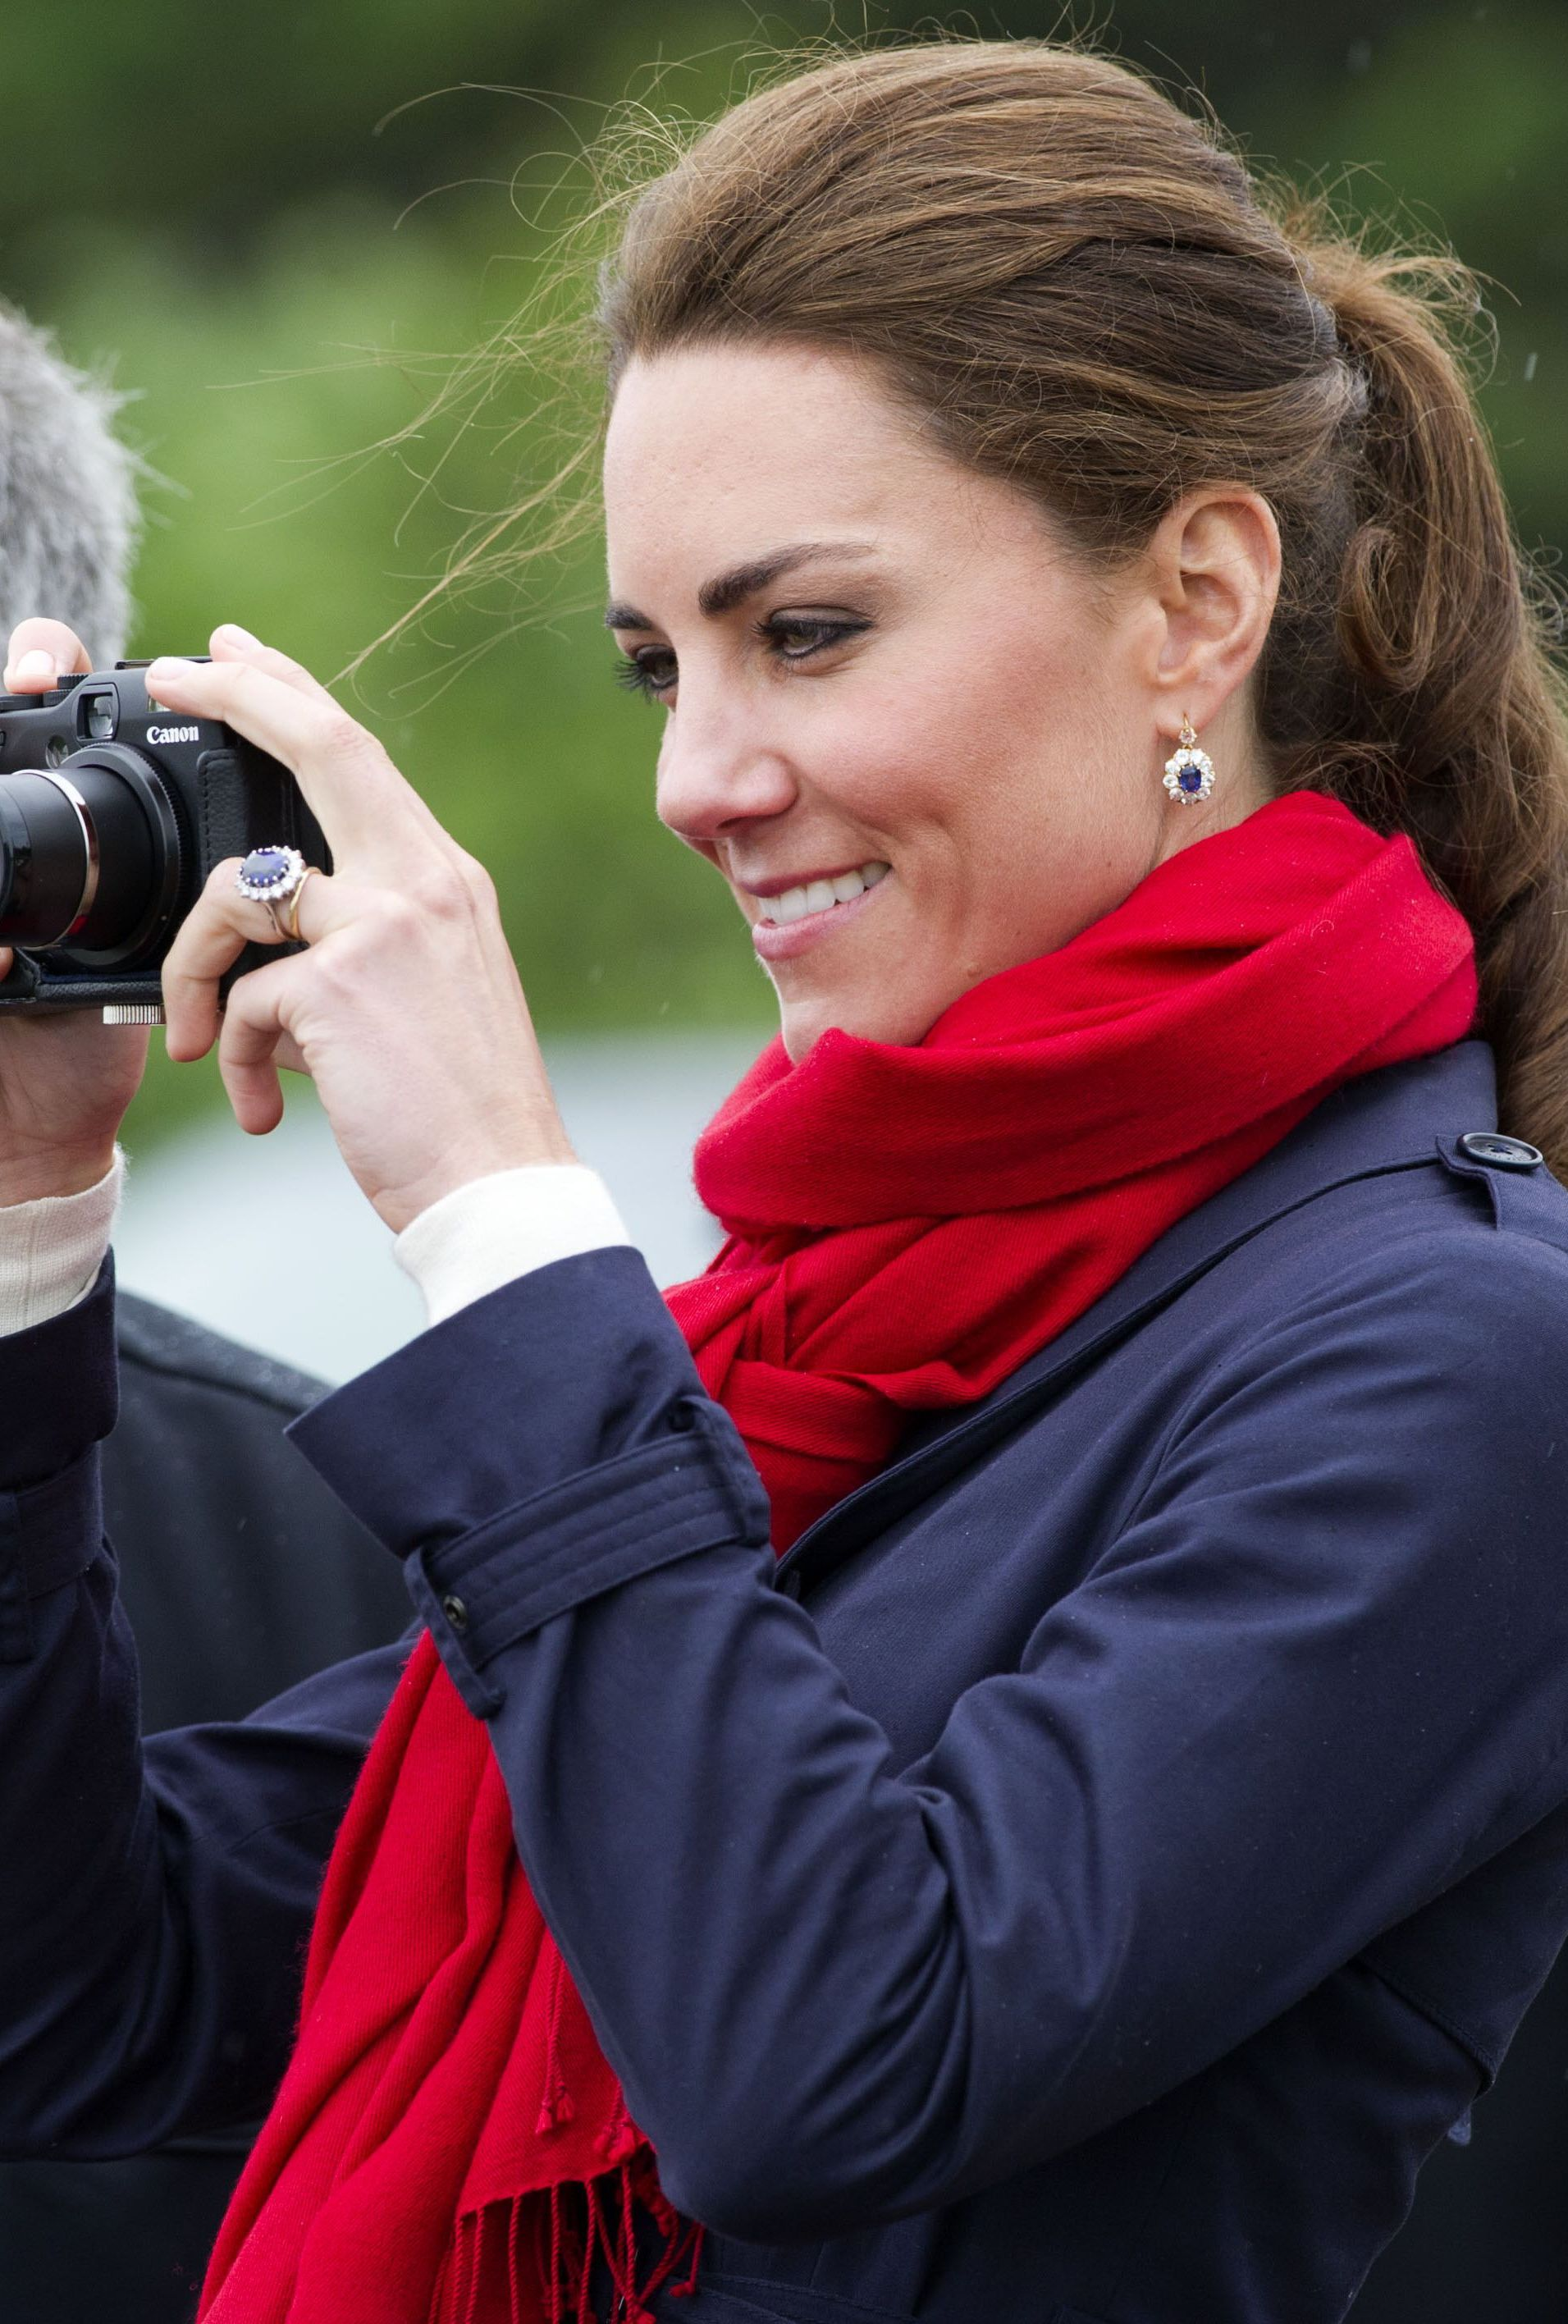 14 Sweet Photos of Prince George, Princess Charlotte, and Prince Louis Taken By Kate Middleton